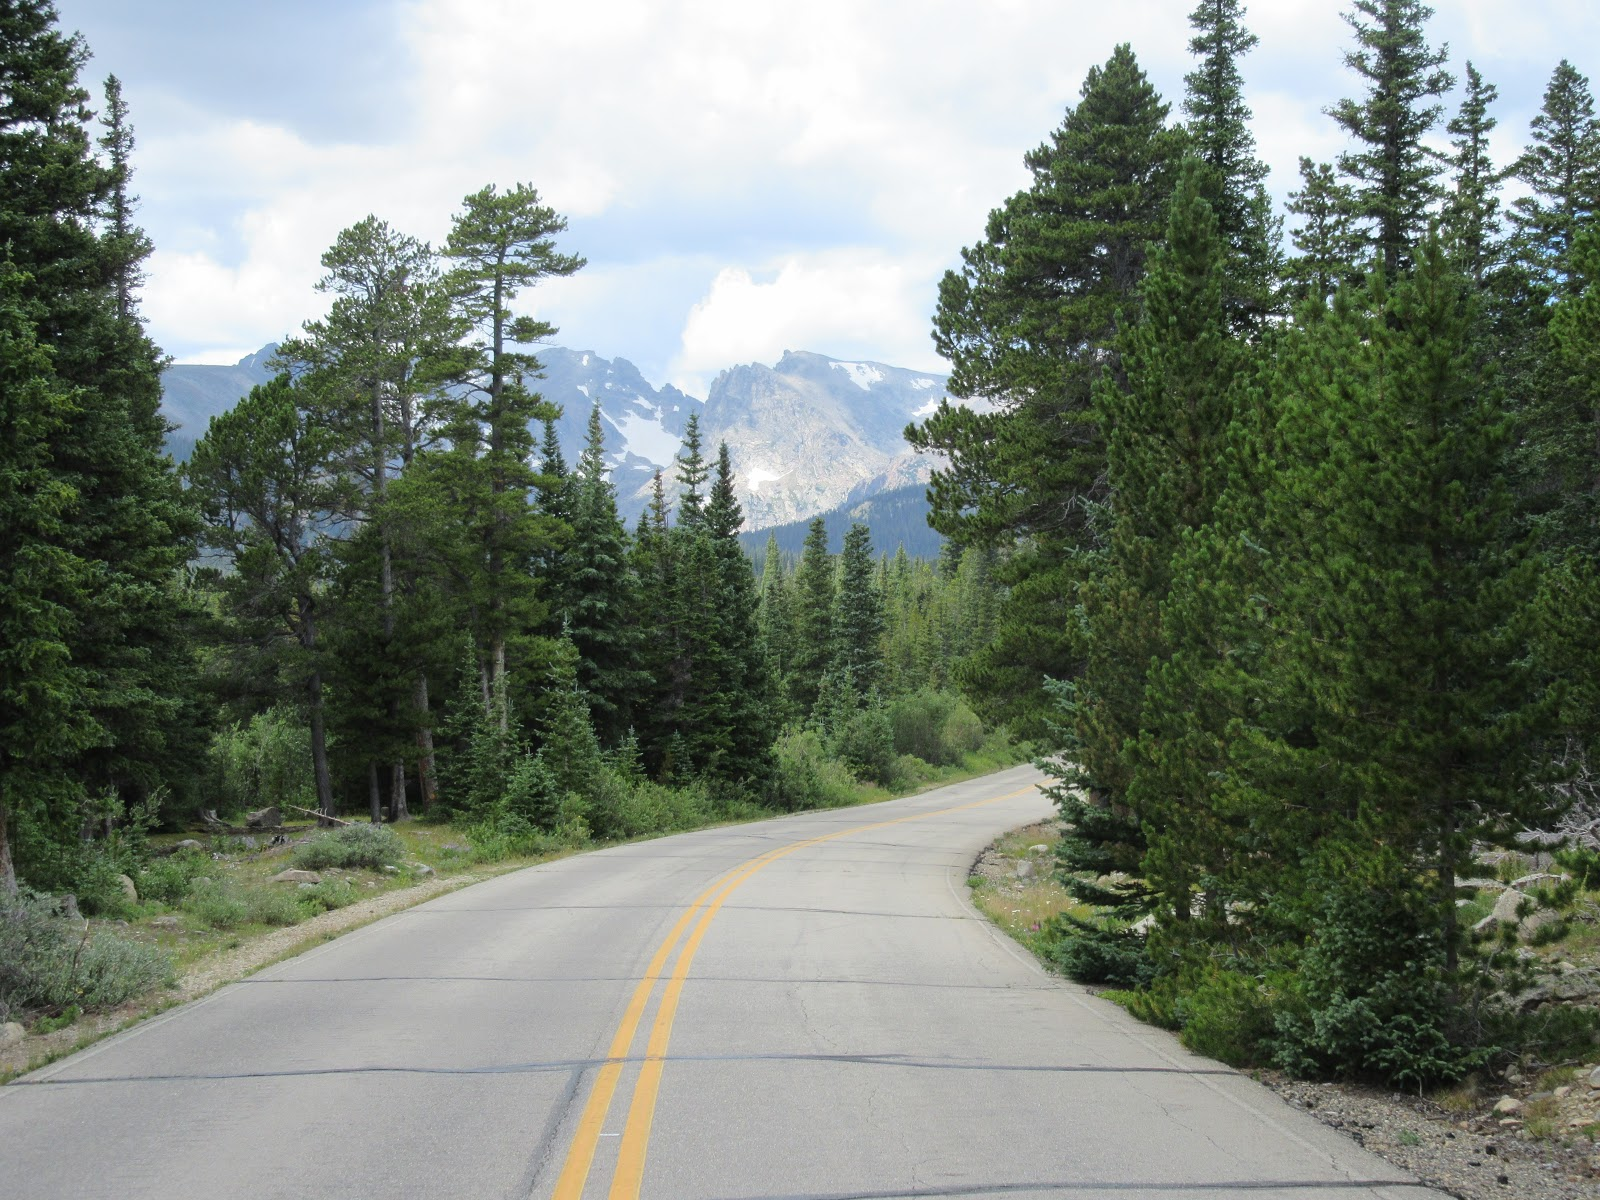 Climbing Left Hand Canyon by bike - road bordered by trees with mountain in the background